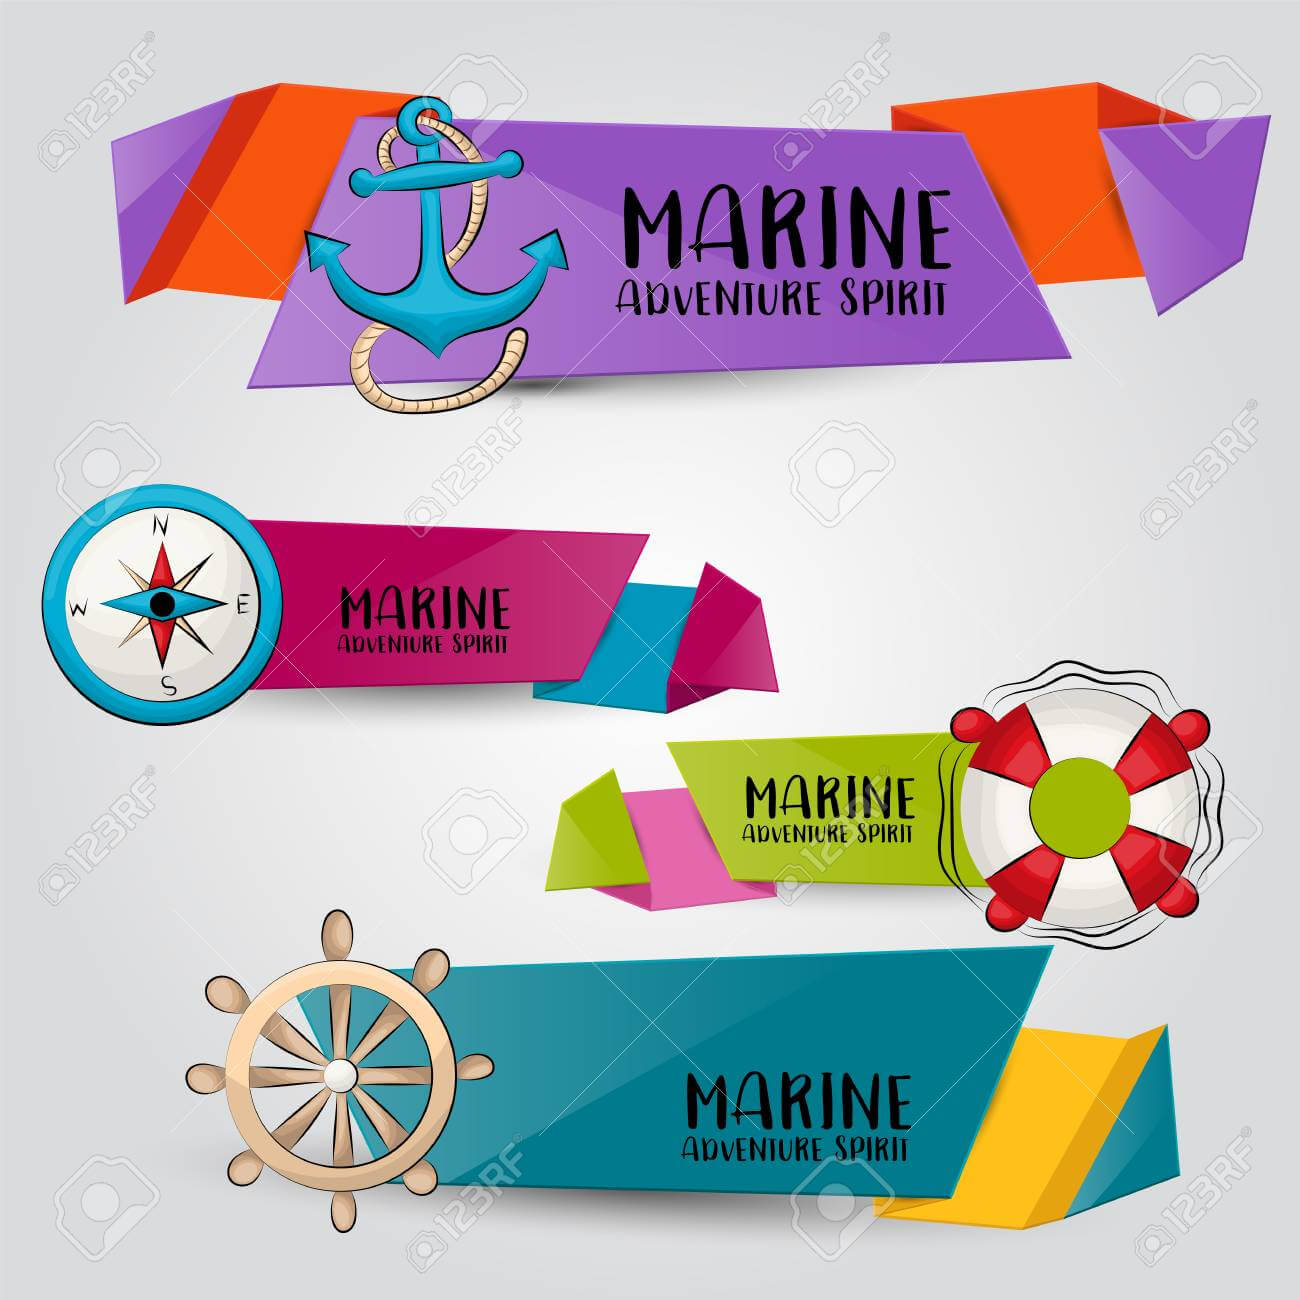 Marine Nautical Travel Concept. Horizontal Banner Template Set Intended For Nautical Banner Template